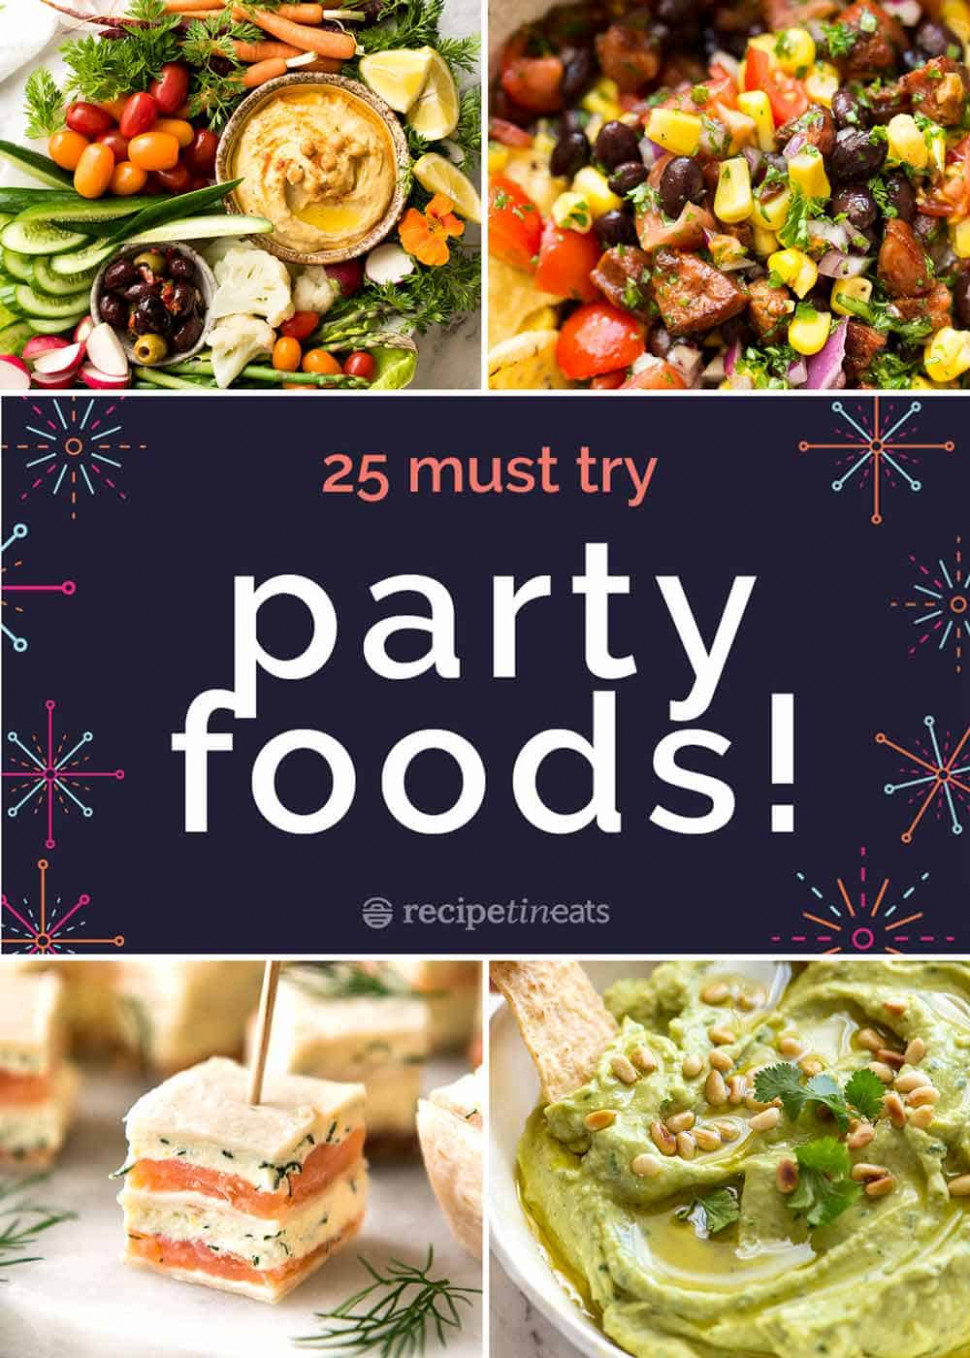 12 BEST Party Food Recipes! - Food Recipes For Dinner